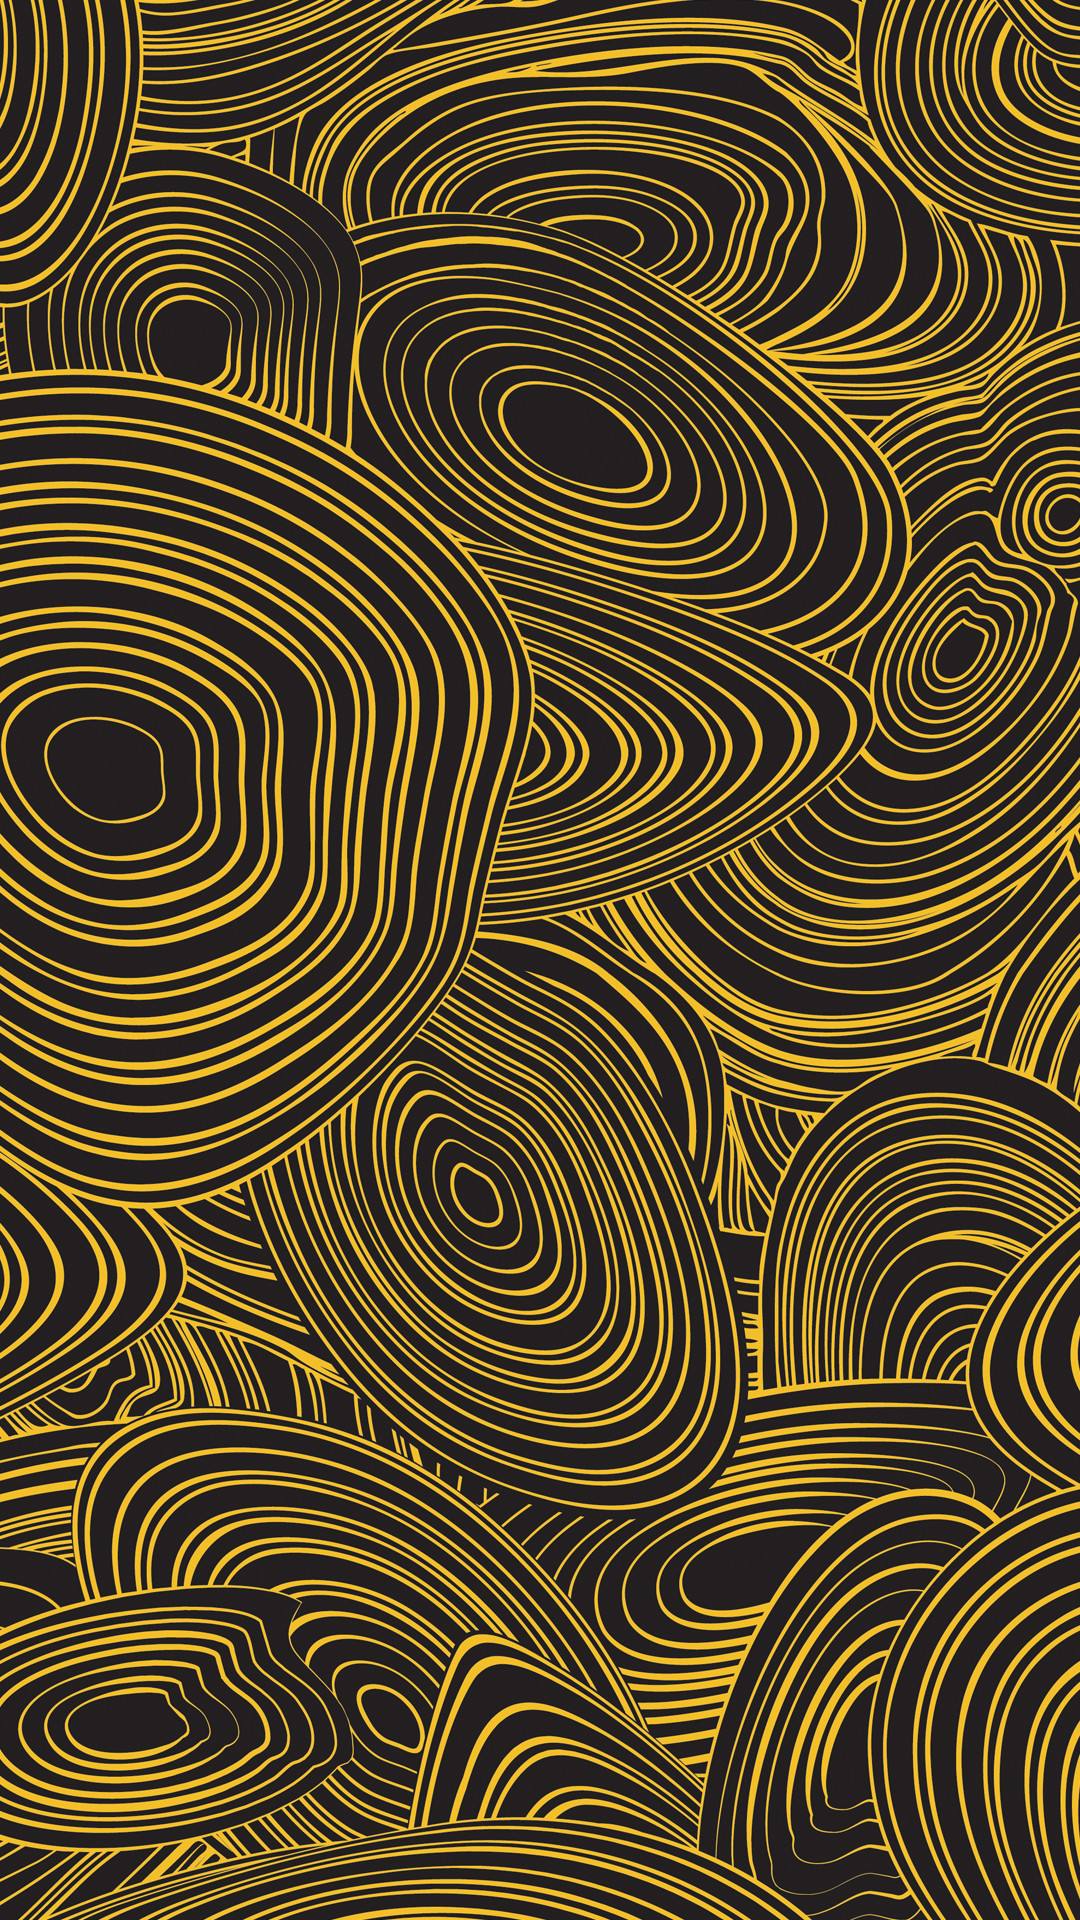 Black And Gold Iphone Wallpaper 72 Images